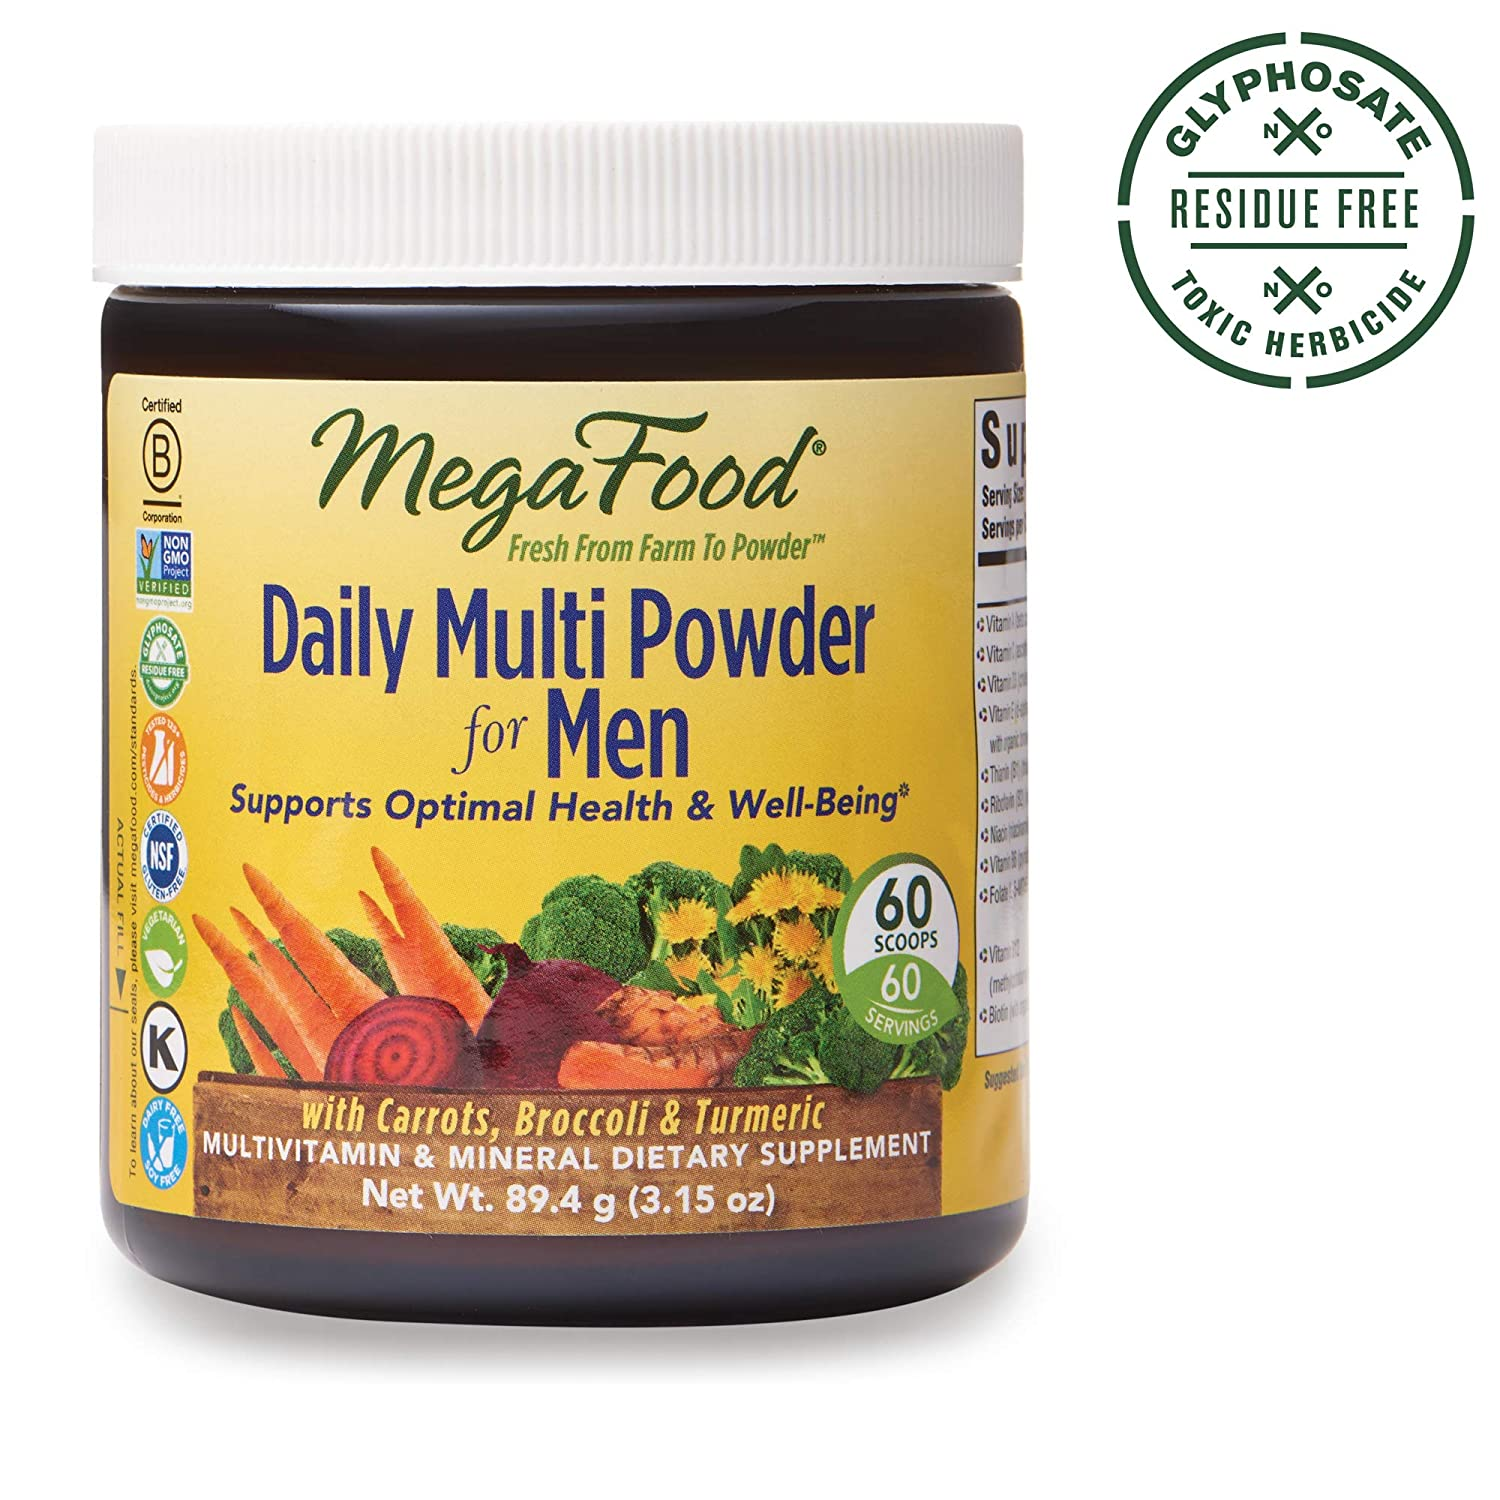 MegaFood, Daily Multi Powder for Men, Supports Optimal Health, Multivitamin and Mineral Supplement, Gluten Free, Vegetarian, 3.15 oz (60 Servings)